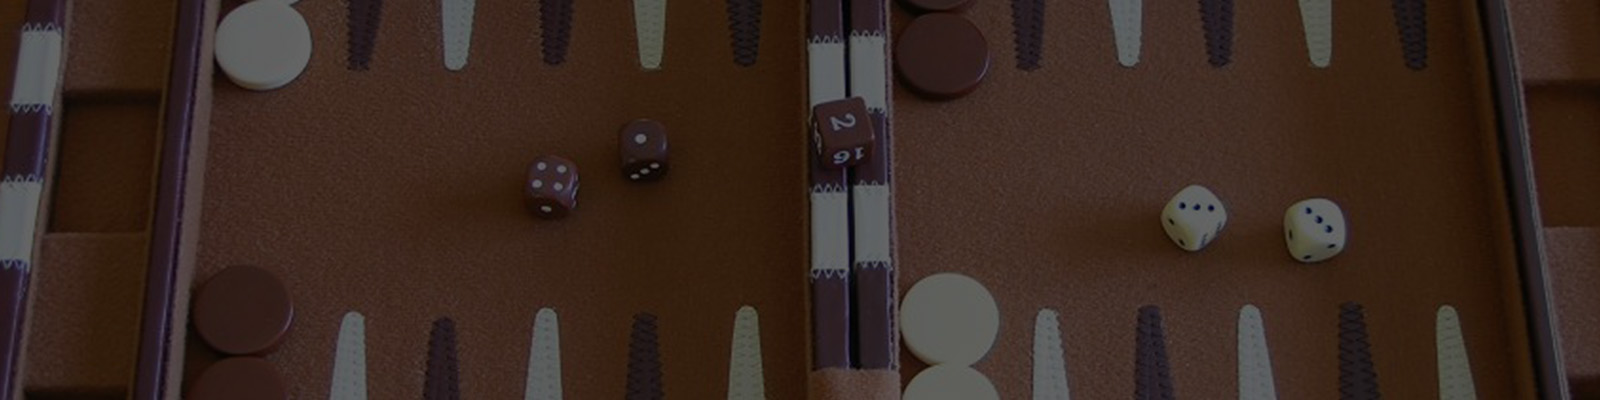 Backgammon_board1